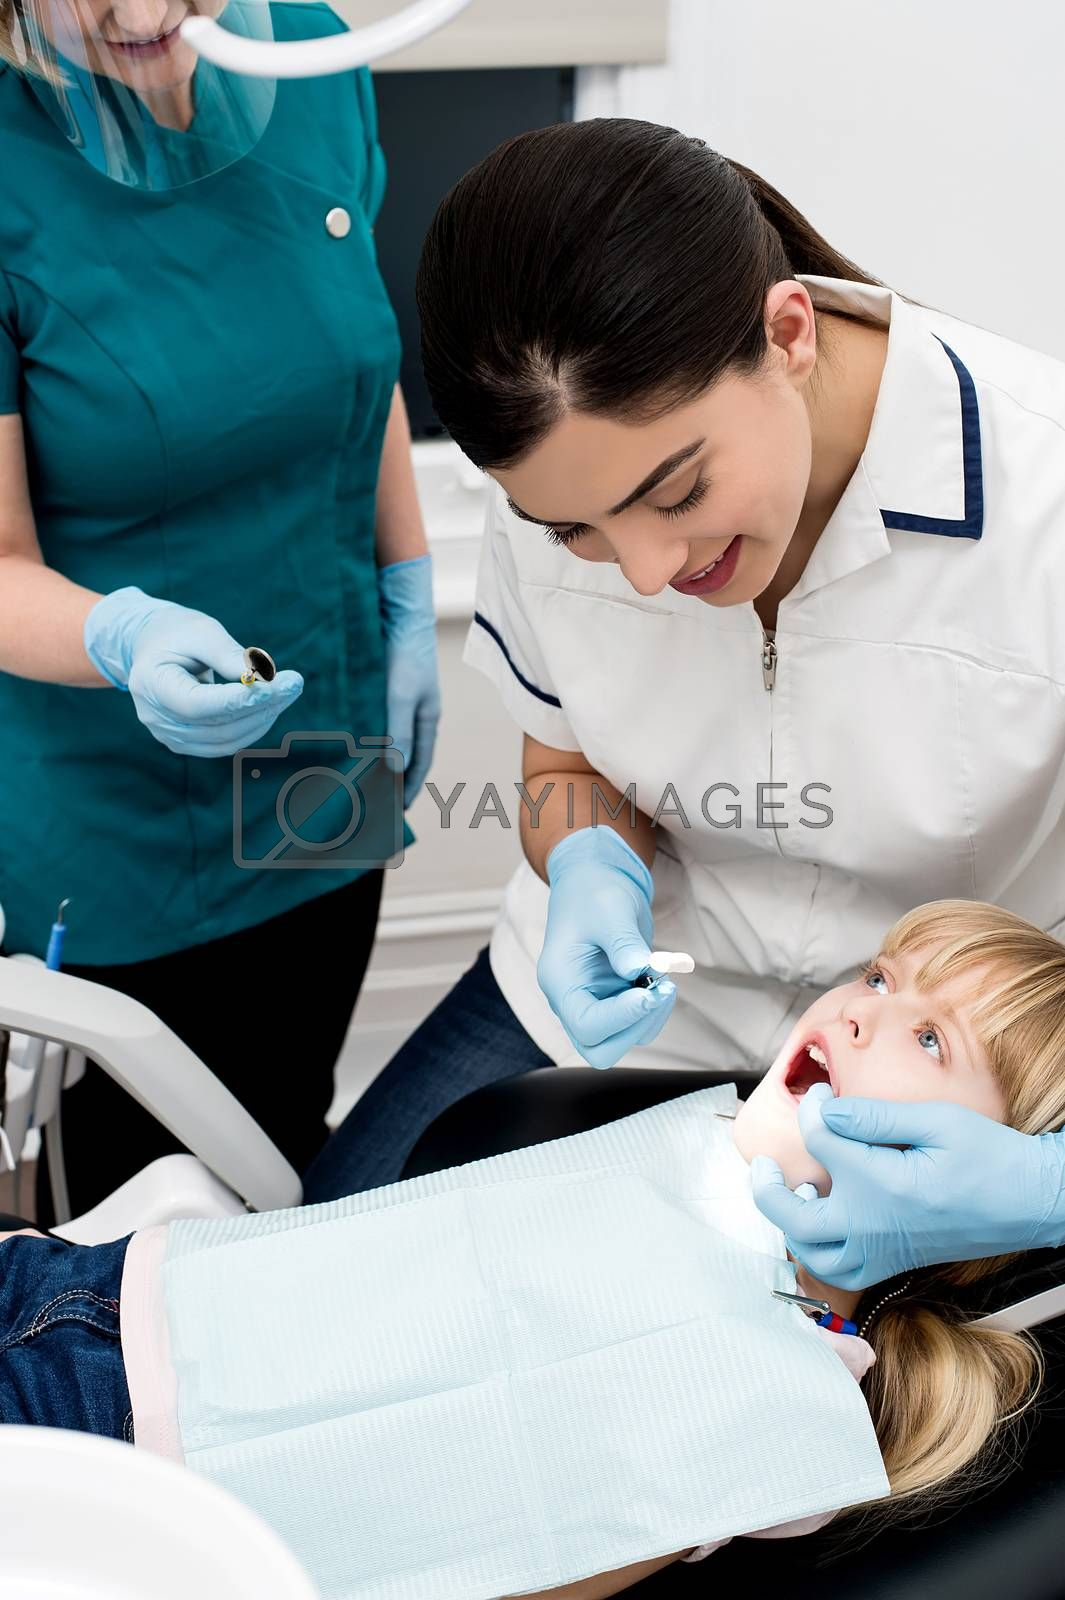 Professional dentist performing a dental procedure